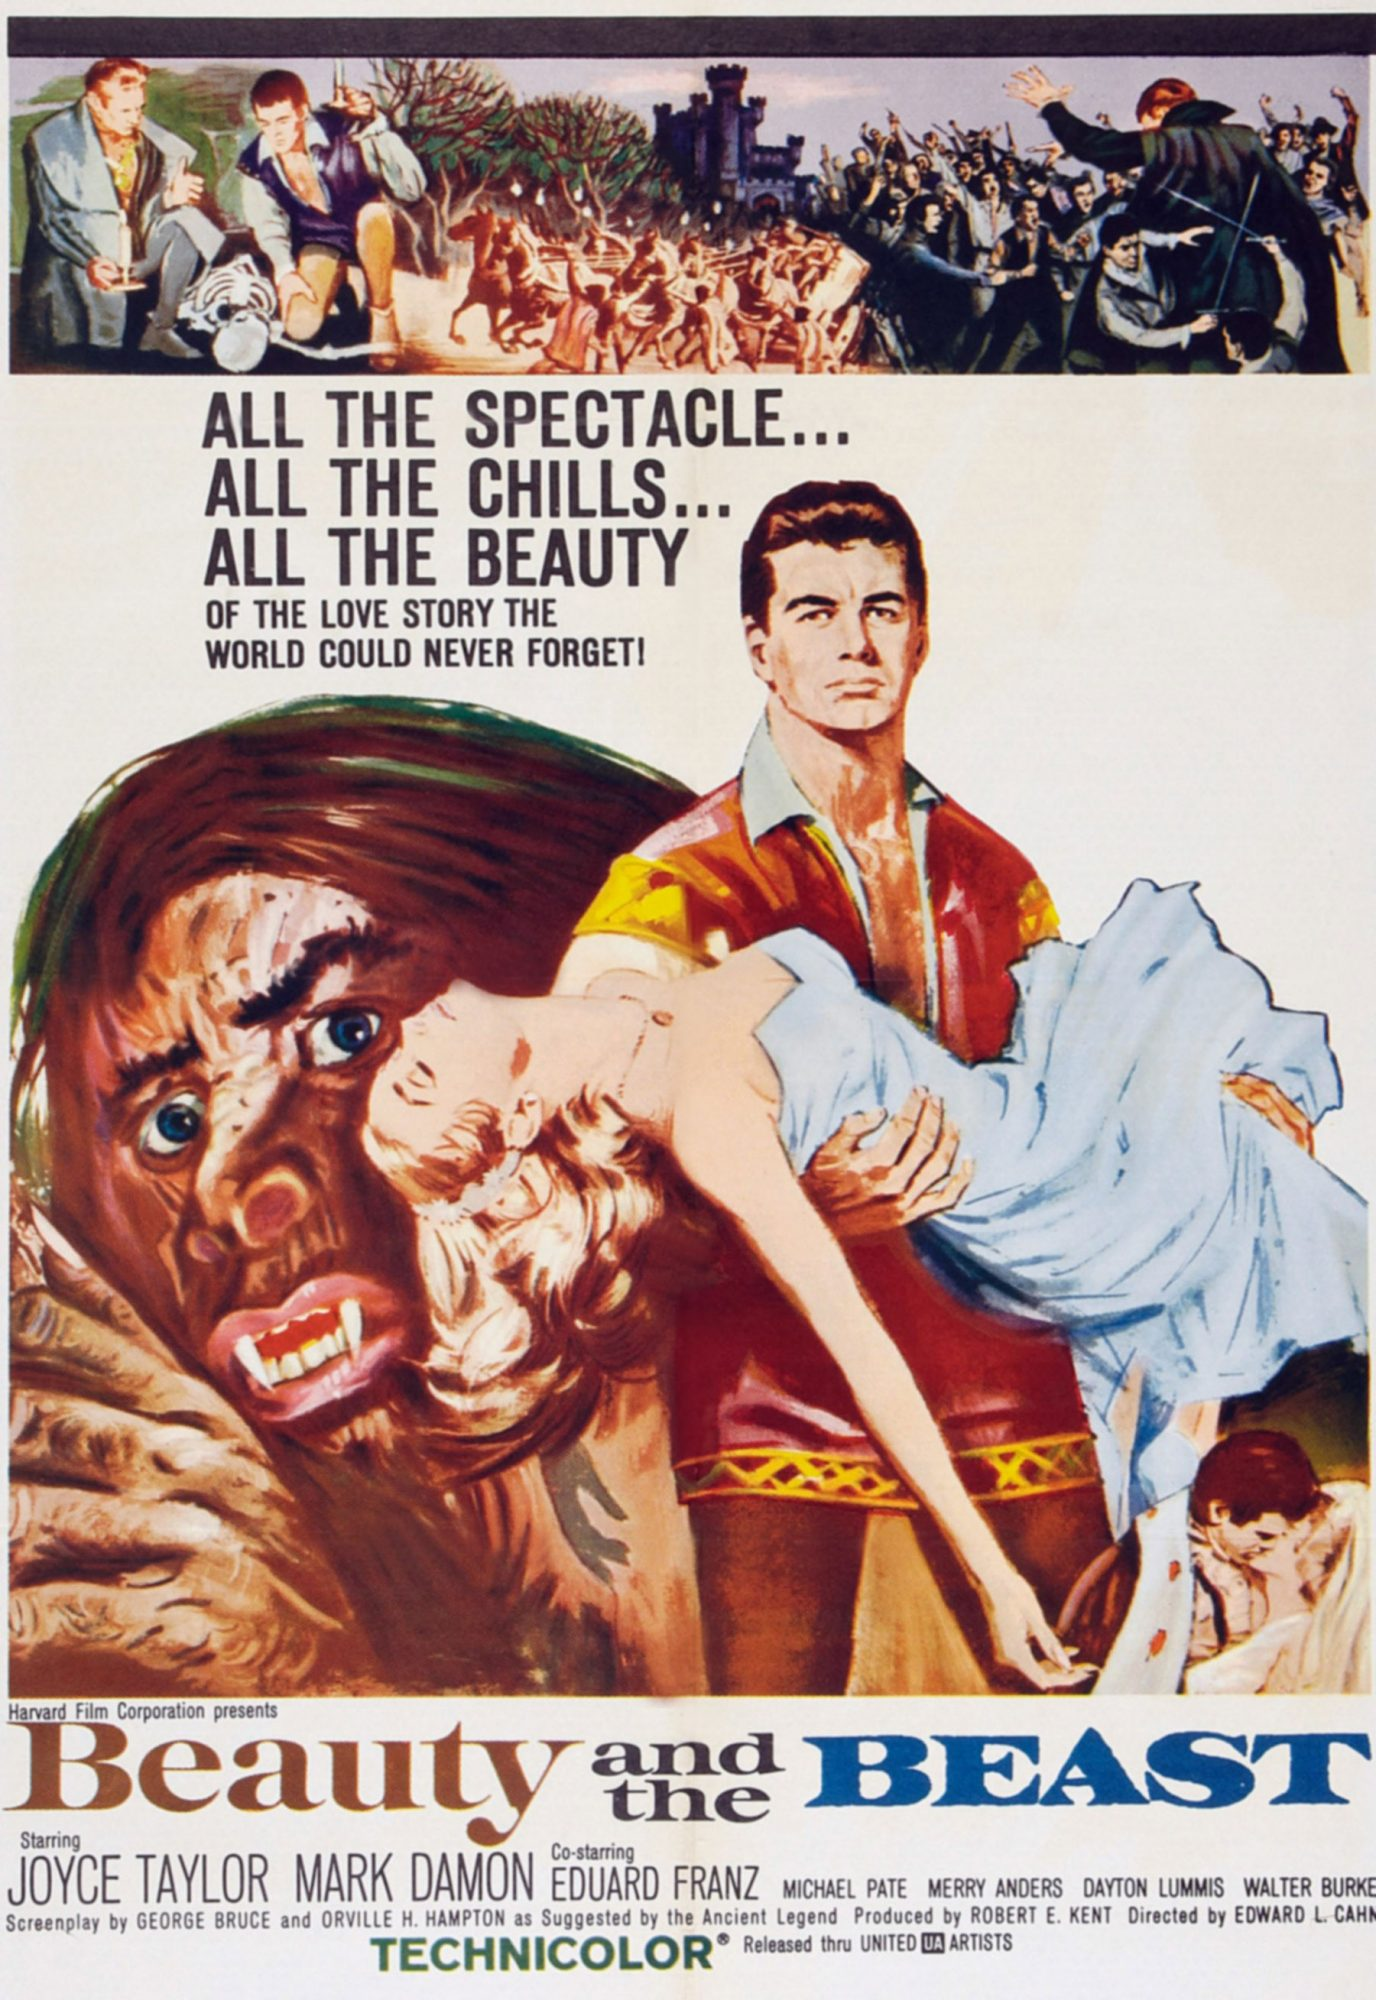 BEAUTY AND THE BEAST, Mark Damon on poster art, 1962